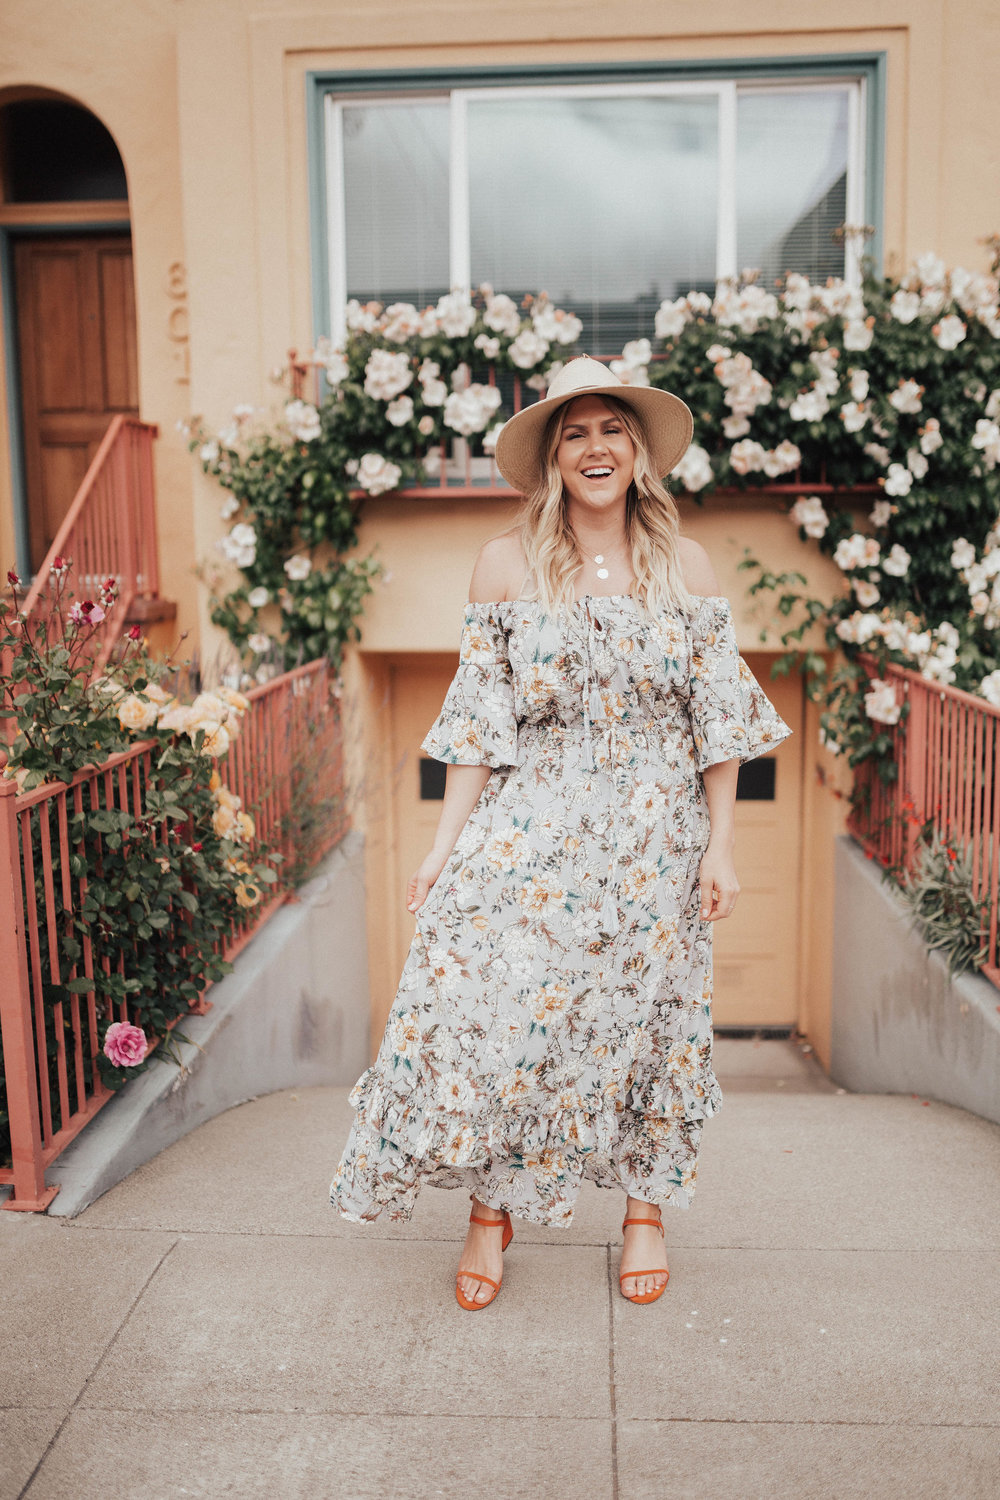 via thea floral dress under $25 janessa leone hat, matisse sandals, serefina necklace & earrings